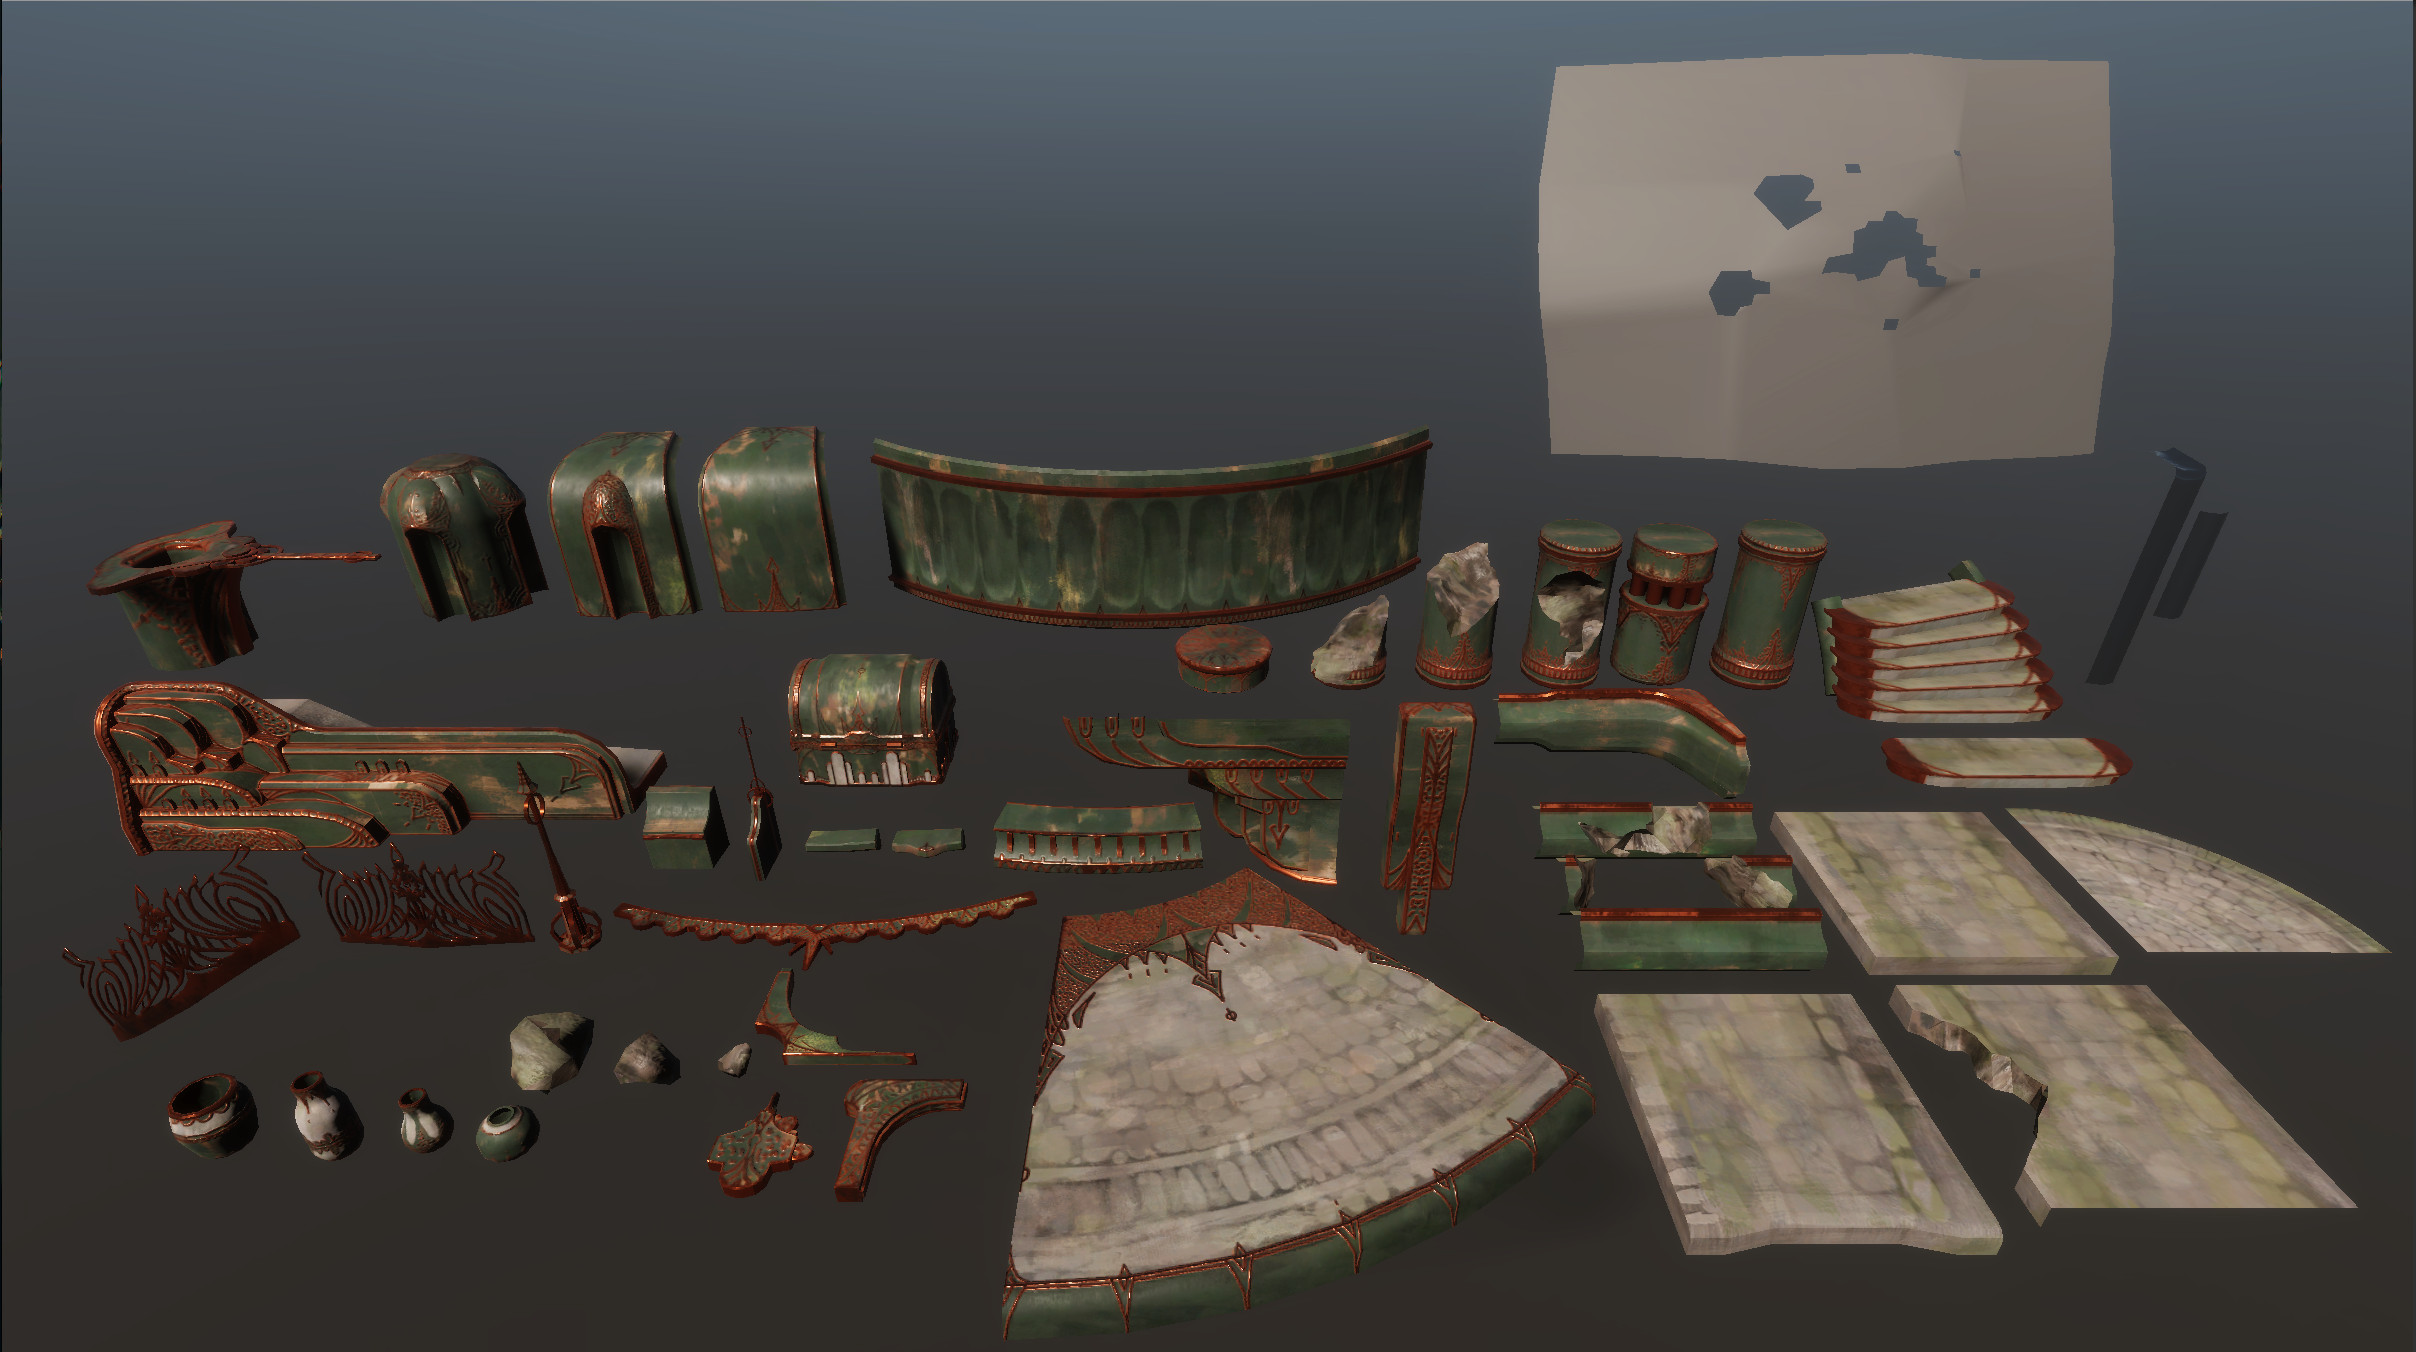 all the pieces used to build scene.